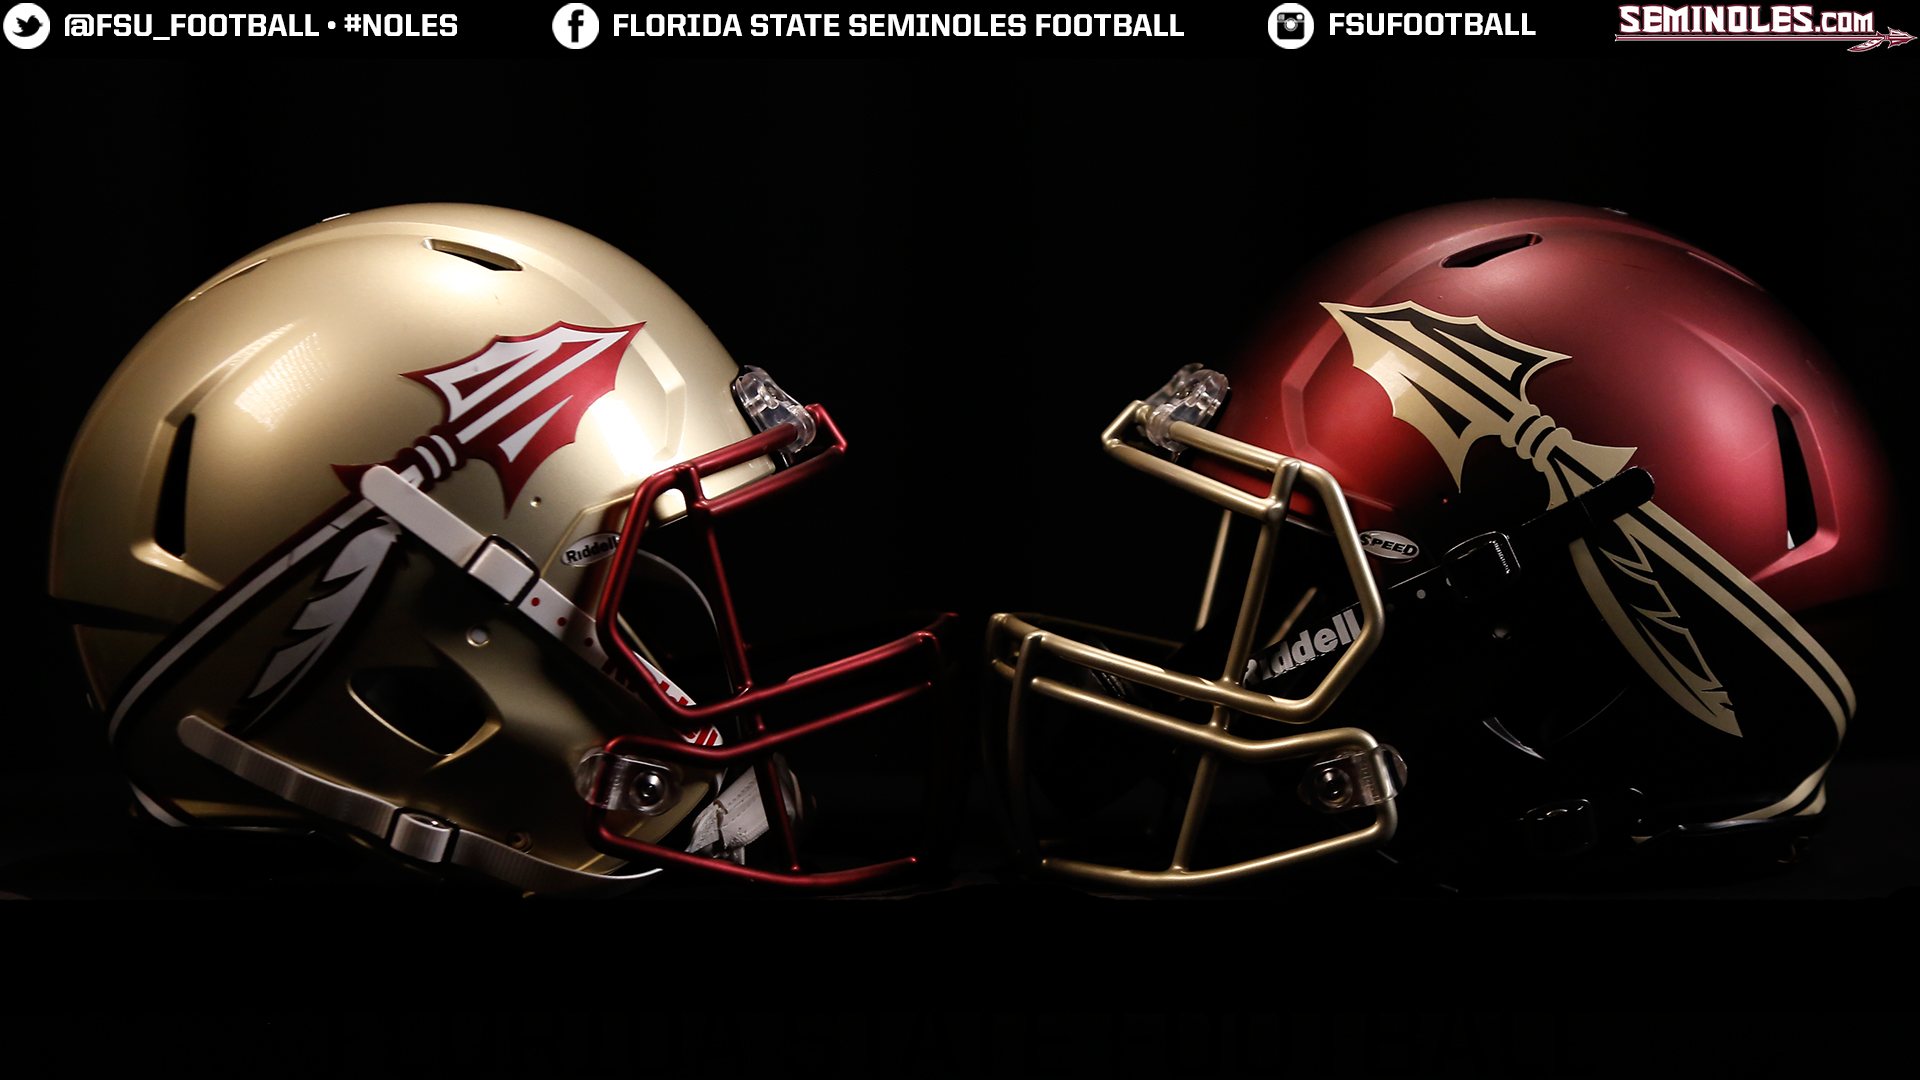 49 Free Fsu Wallpaper On Wallpapersafari